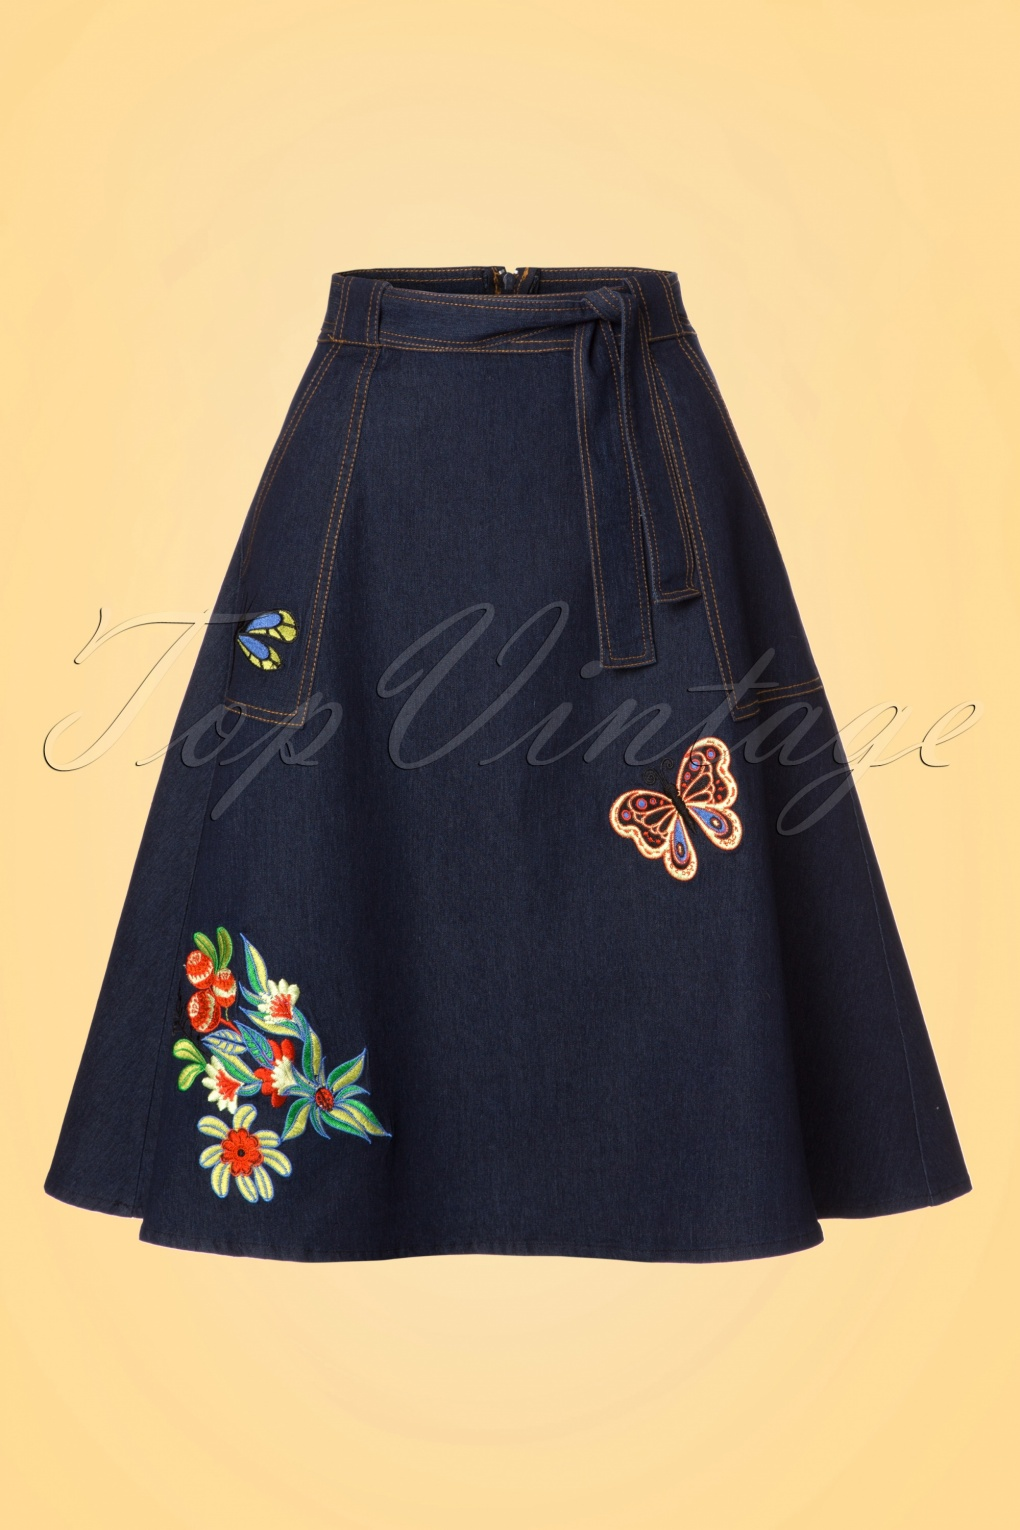 Retro Skirts: Vintage, Pencil, Circle, & Plus Sizes 60s Naomi Embroidered Skirt in Denim £46.67 AT vintagedancer.com